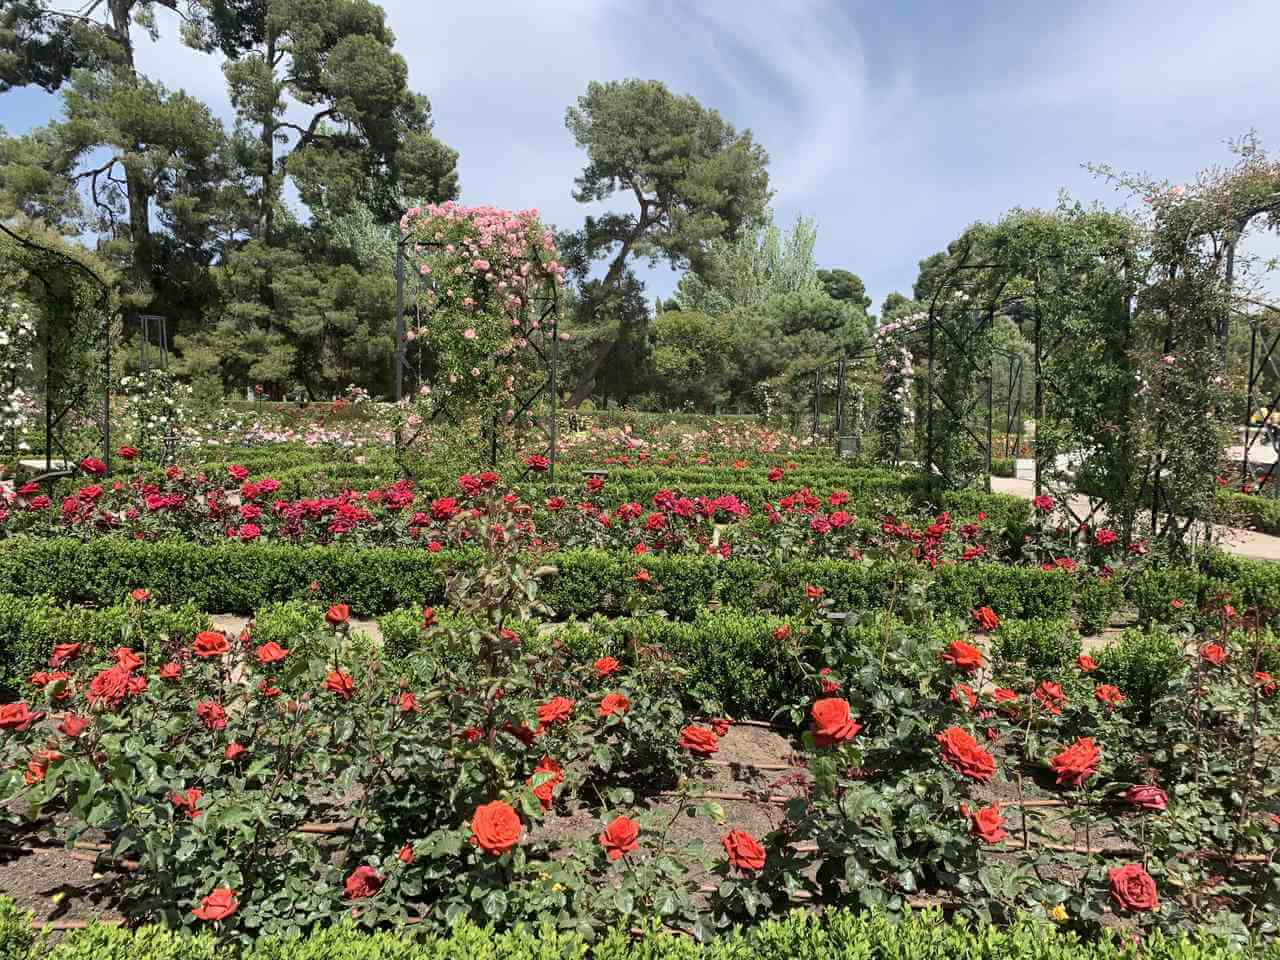 10 of the most beautiful parks in Madrid